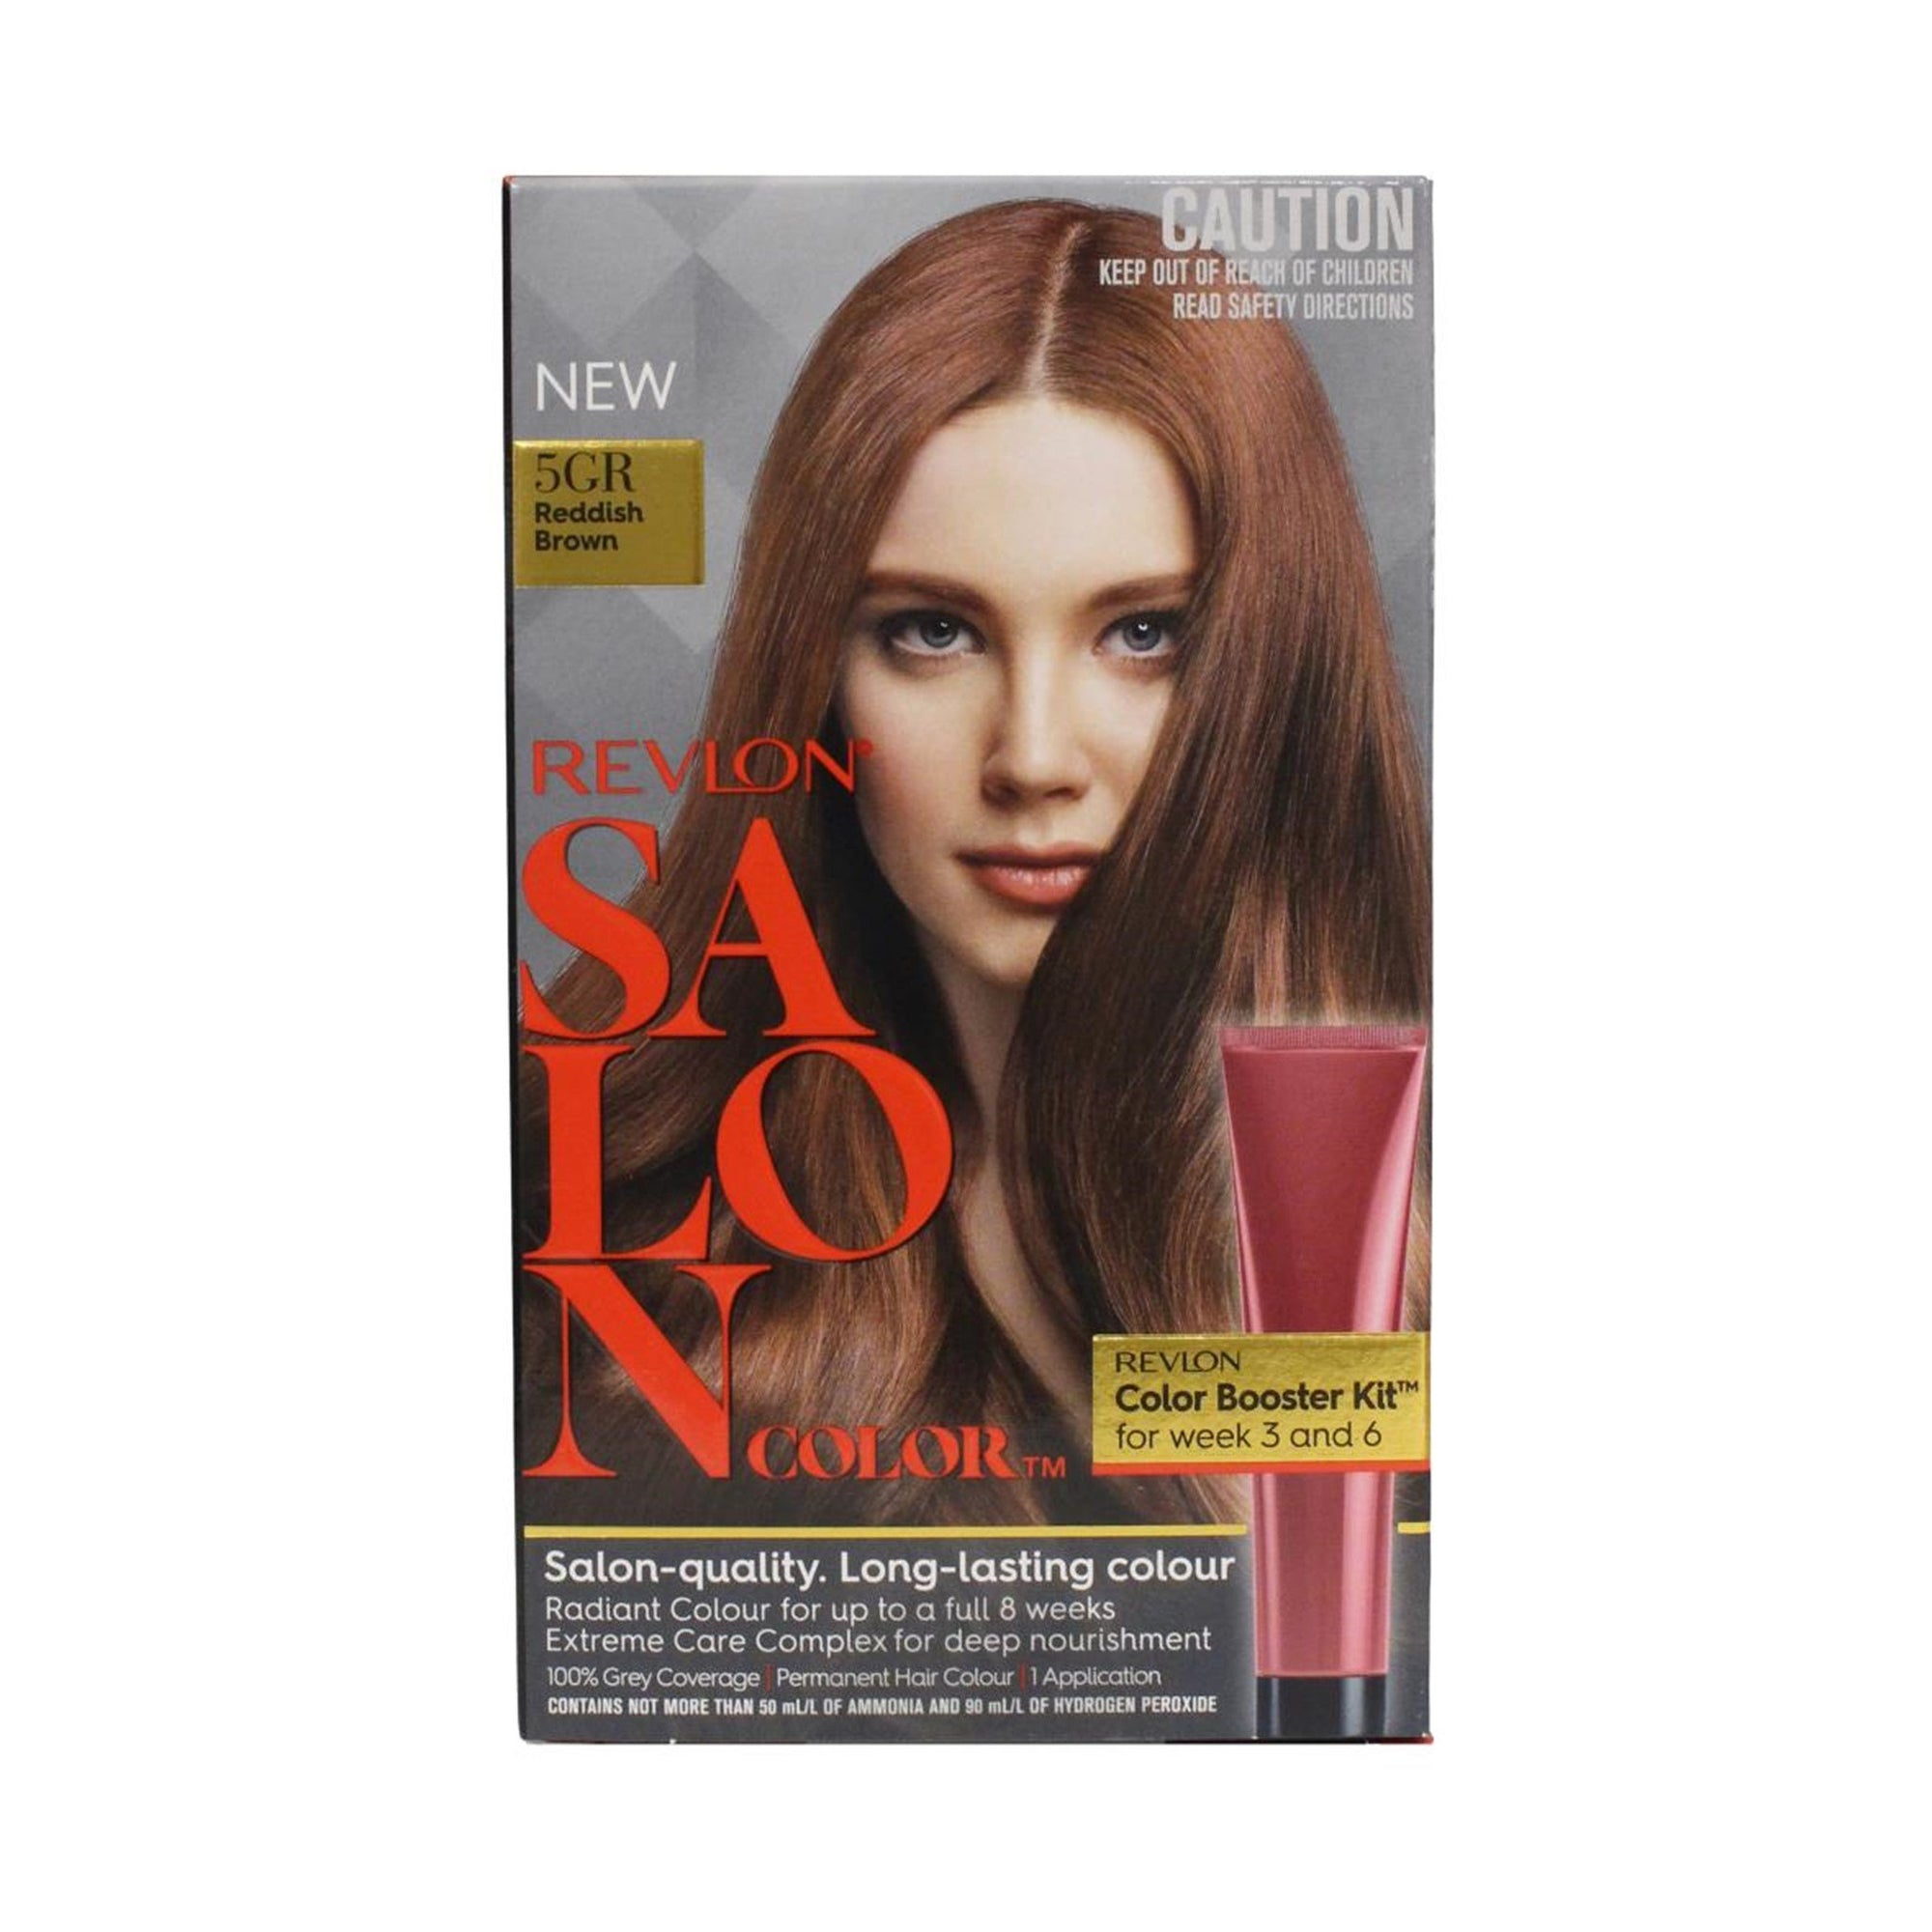 Revlon Salon Hair Color #5GR Reddish Brown